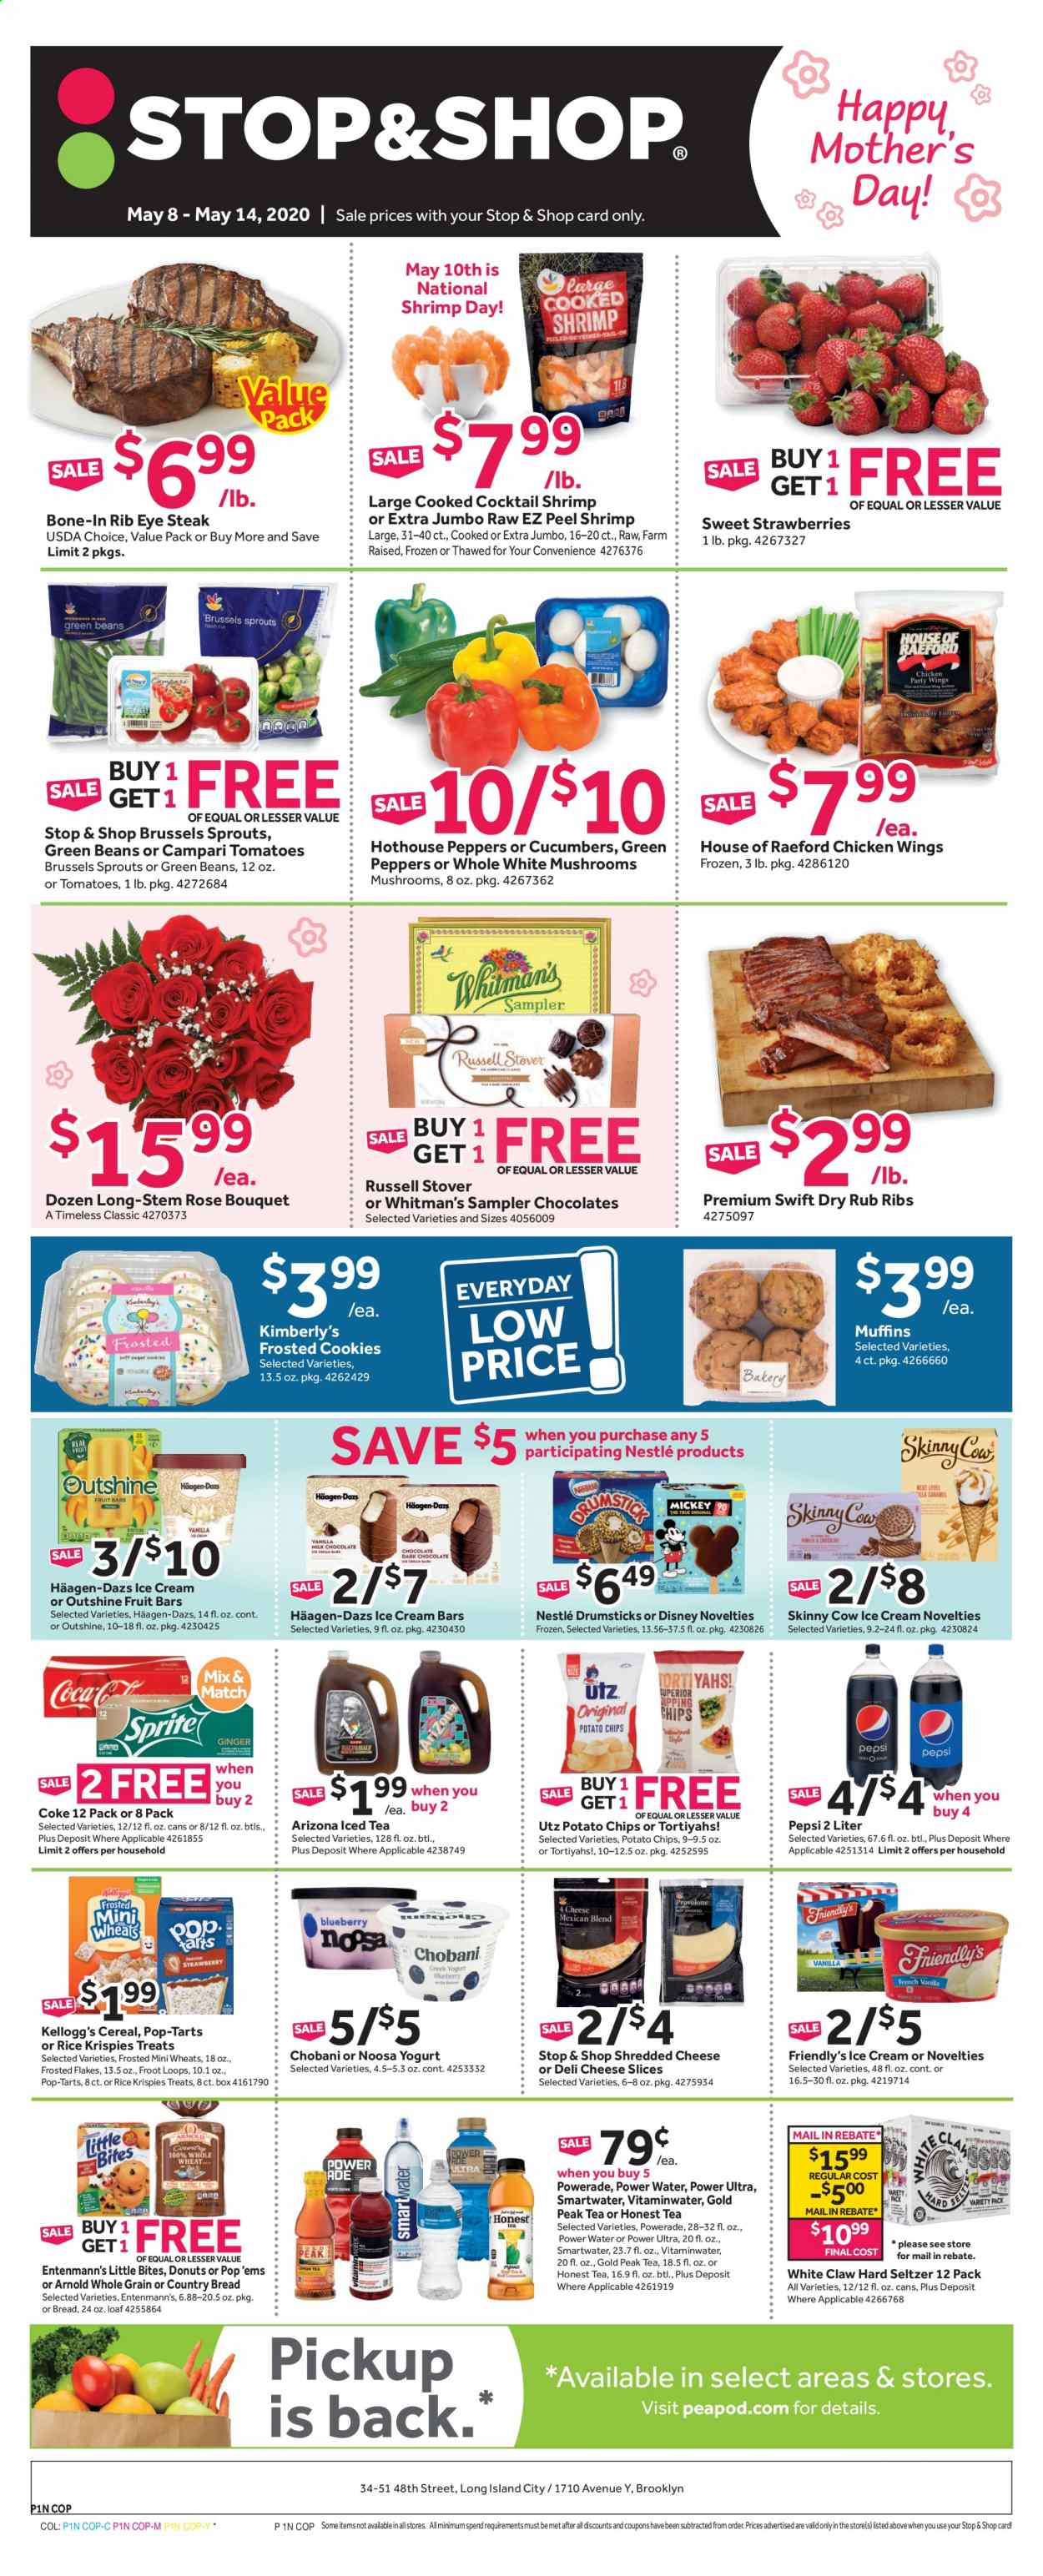 Stop & Shop Flyer - 05.08.2020 - 05.14.2020 - Sales products - mushroom, bread, donut, Entenmann's, Little Bites, chicken, chicken wings, beef meat, steak, rib eye, ribeye steak, shrimps, shredded cheese, sliced cheese, yoghurt, Chobani, ice cream, ice cream bars, Häagen-Dazs, Friendly's Ice Cream, beans, strawberries, green beans, brussels sprout, cookies, Nestlé, chocolate, Kellogg's, Pop-Tarts, potato chips, cereals, Rice Krispies, Frosted Flakes, Coca-Cola, Powerade, Pepsi, AriZona, Gold Peak Tea, seltzer water, White Claw, hard seltzer, Disney, water. Page 1.